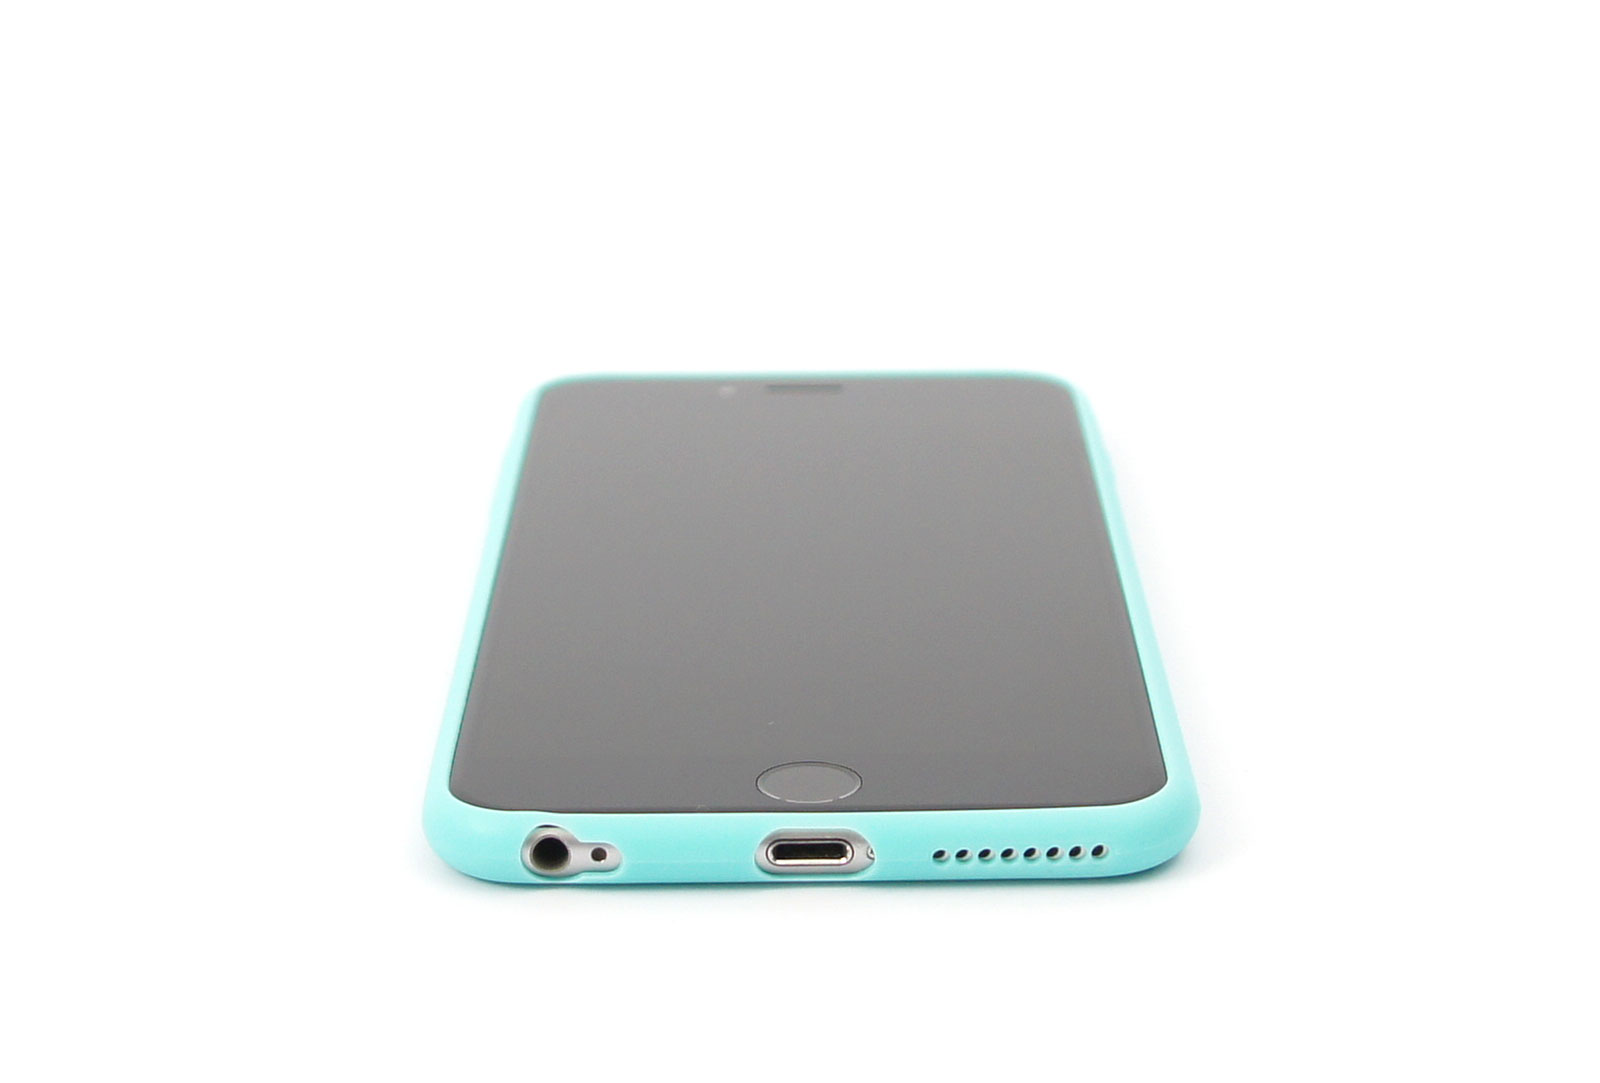 coque silicone souple turquoise pour iphone 5 iphone 5 s. Black Bedroom Furniture Sets. Home Design Ideas